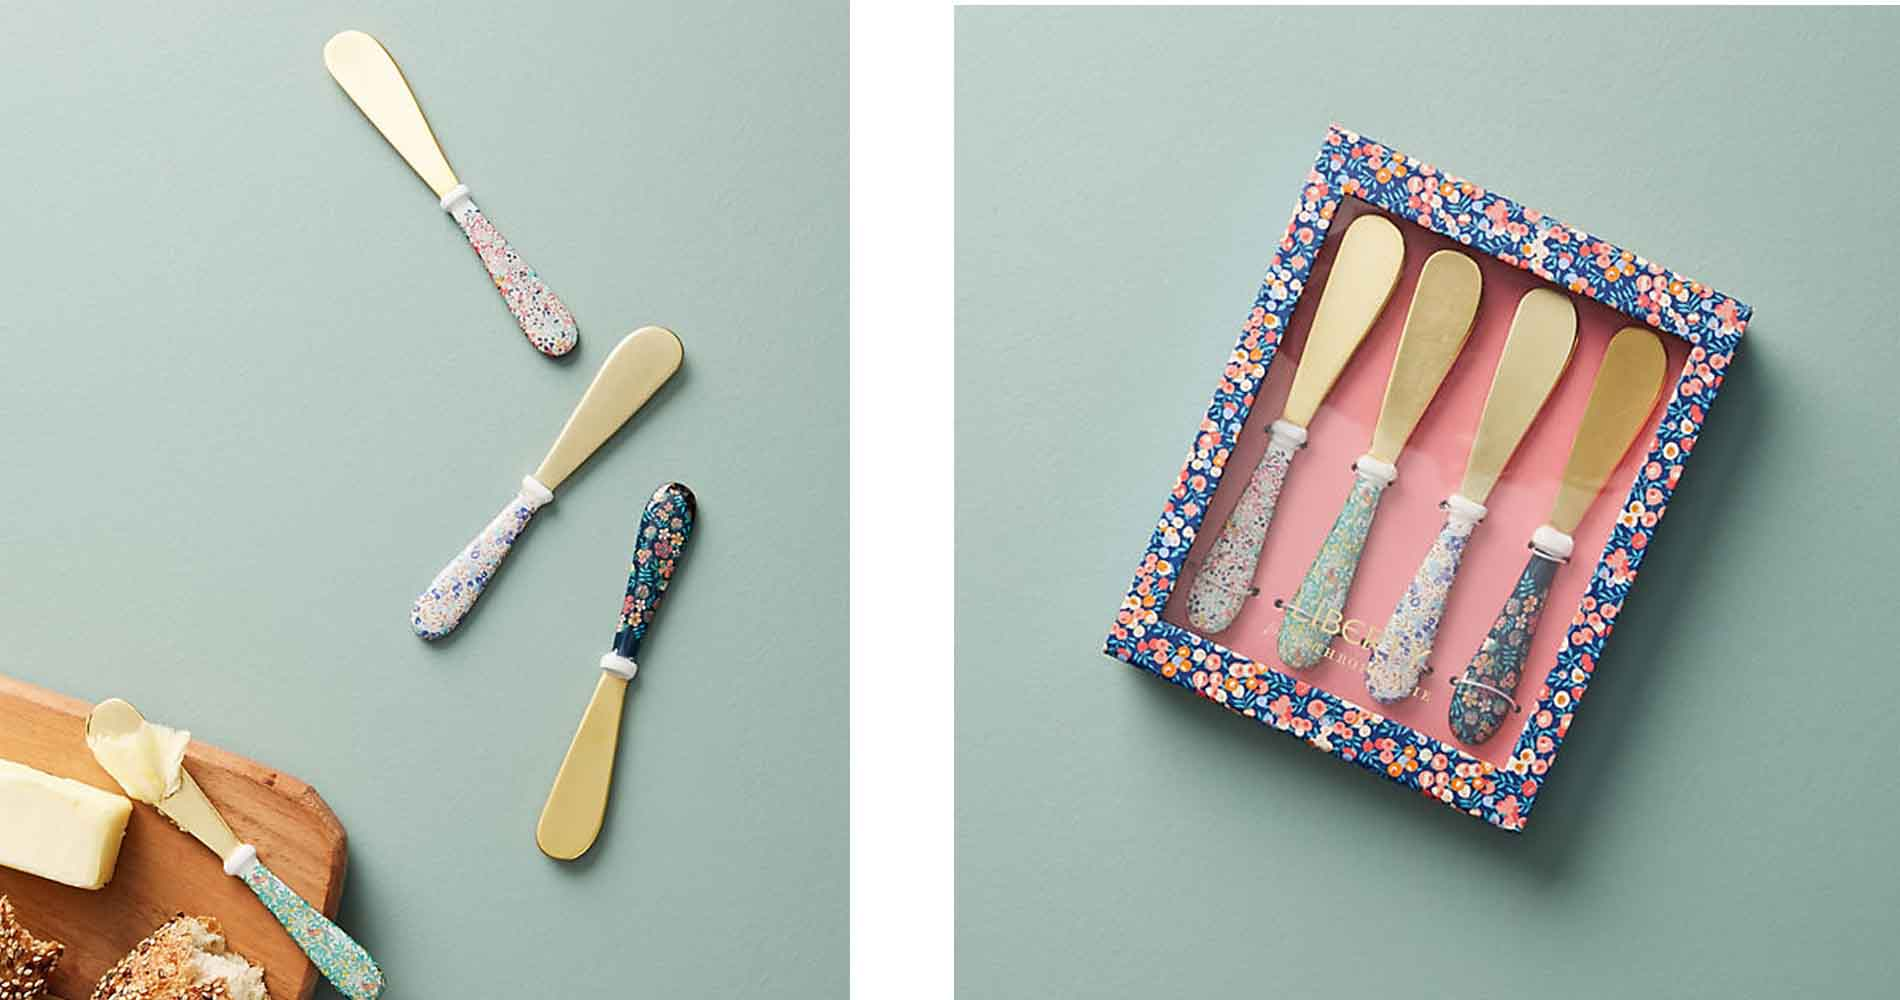 Anthropologie Knives